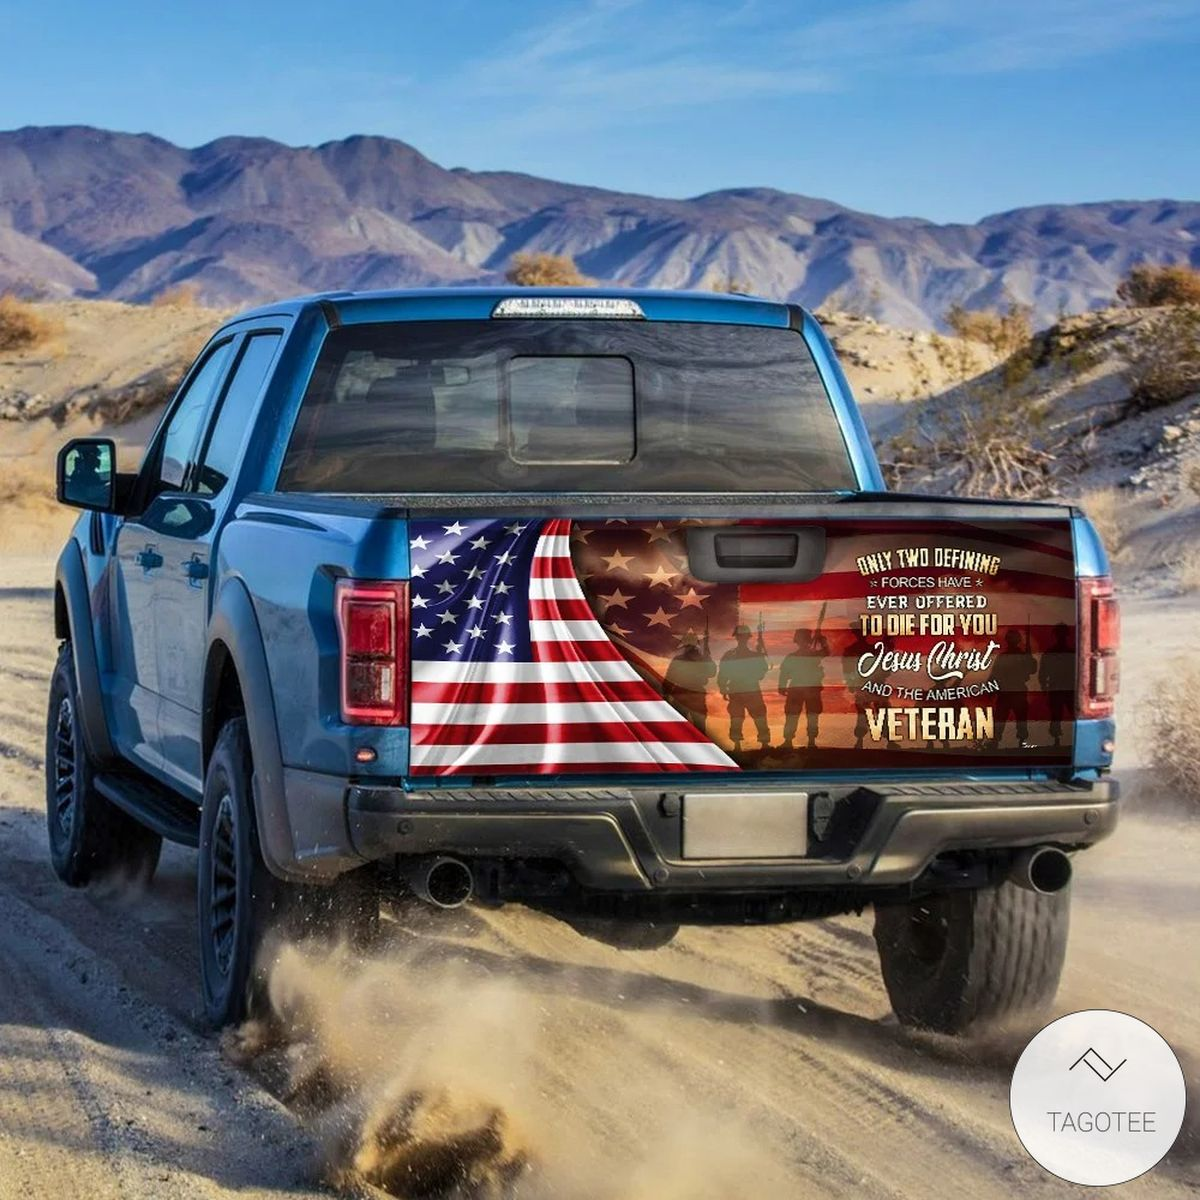 Only Two Defining Forces Have Ever Offered To Die For You Jesus Christ Veteran Tailgate Wrapz